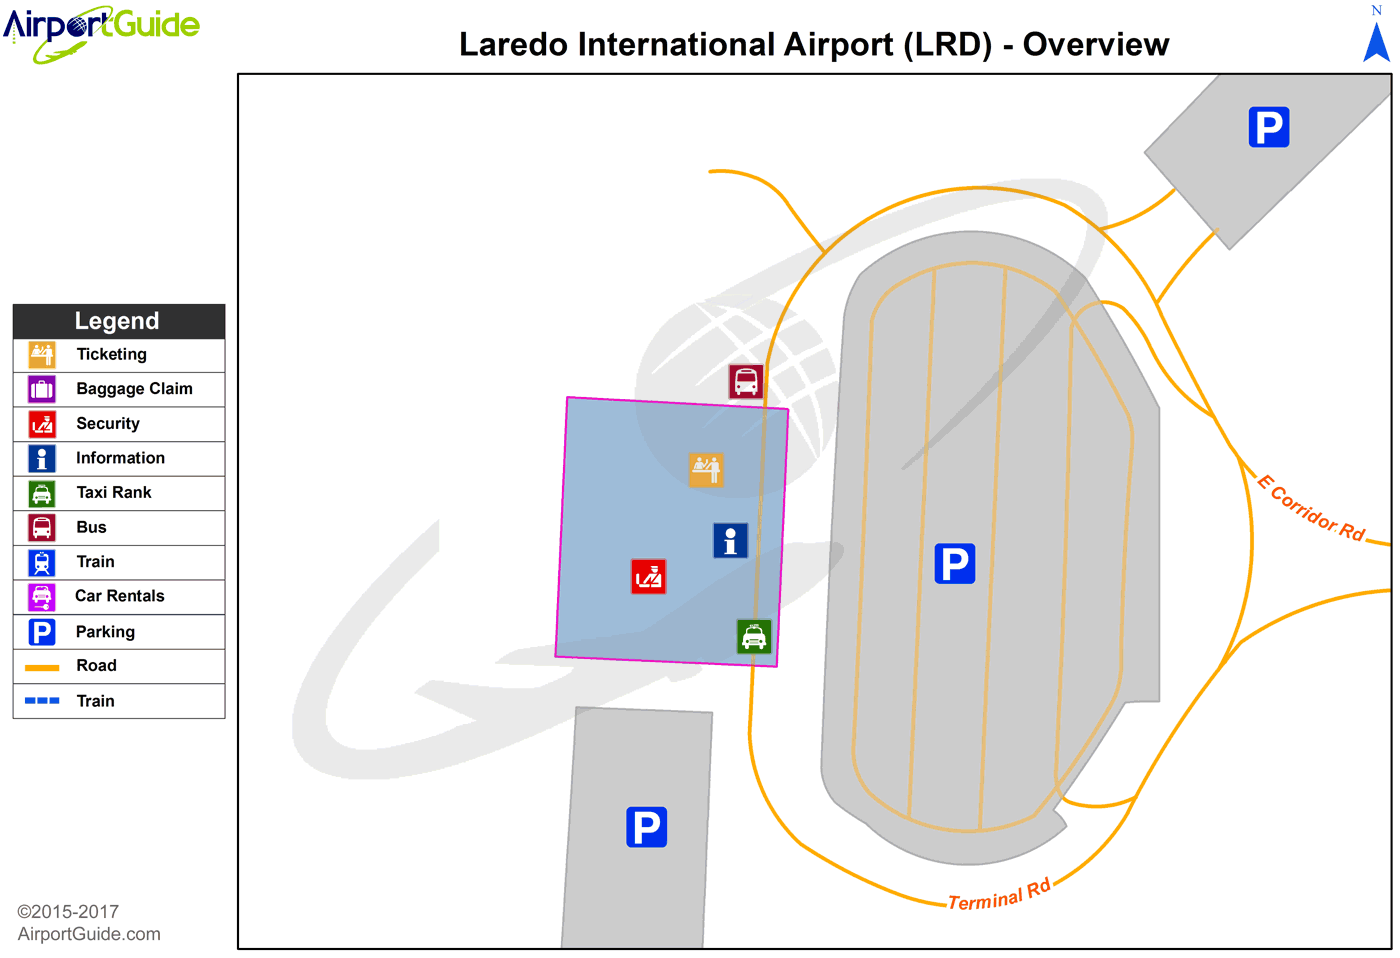 Laredo - Laredo International (LRD) Airport Terminal Map - Overview